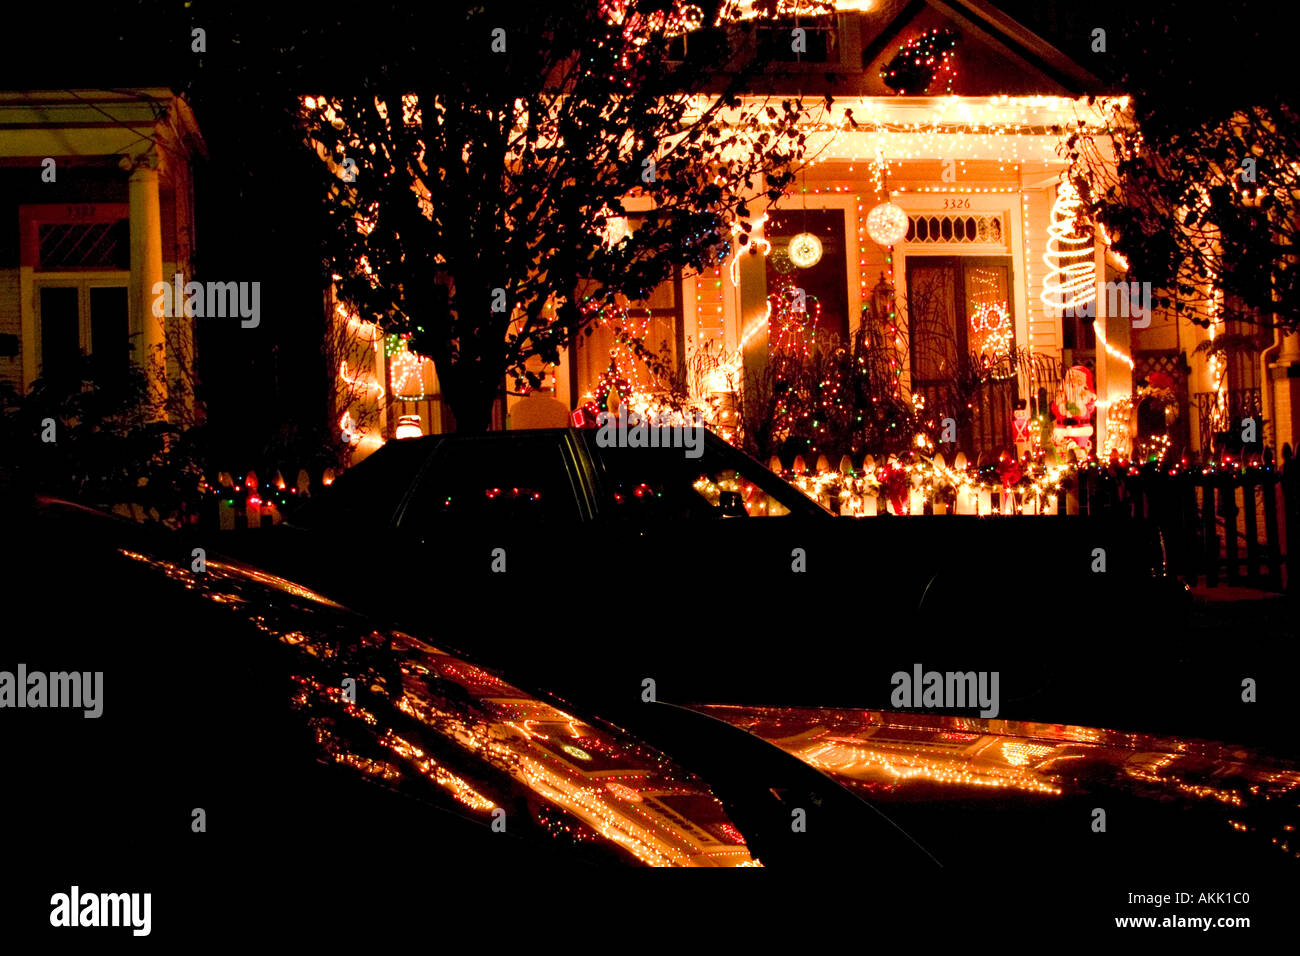 christmas lights decorate a house on dumaine street off bayou st john in new orleans louisiana